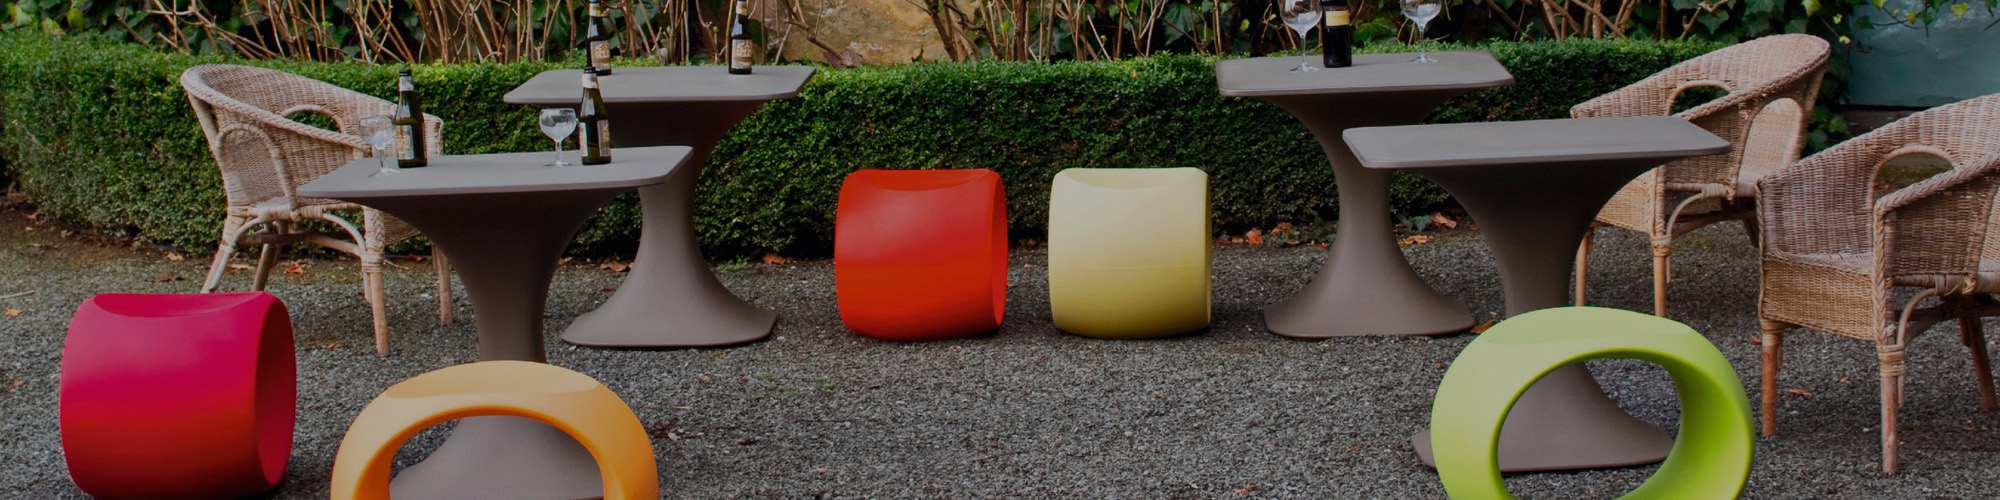 Serralunga Outdoor Furniture